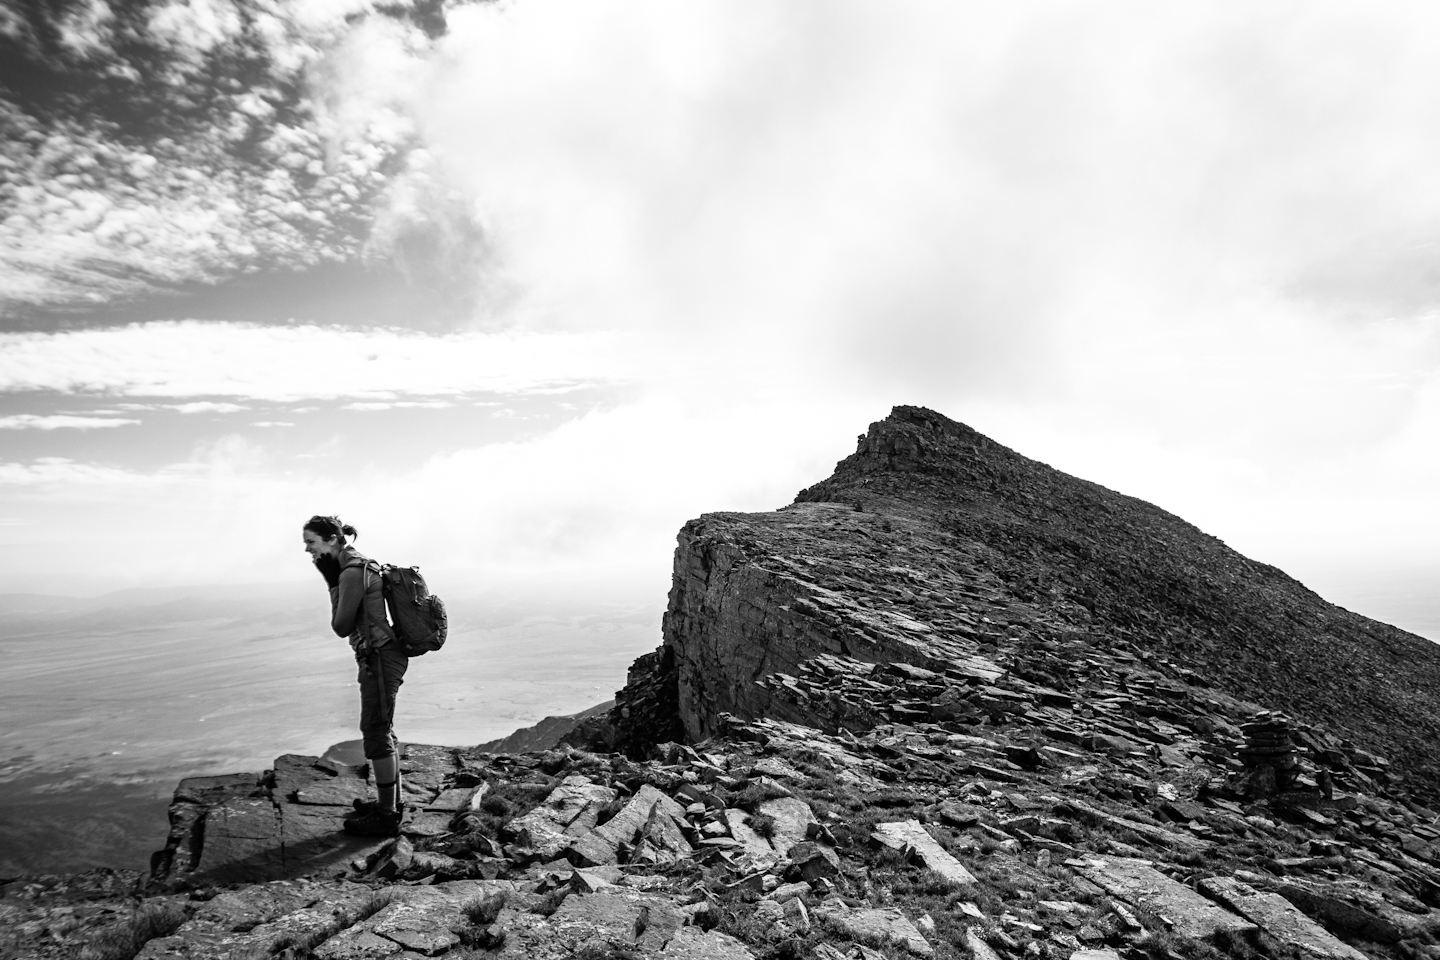 Nearing the summit of Mount Humboldt, CO